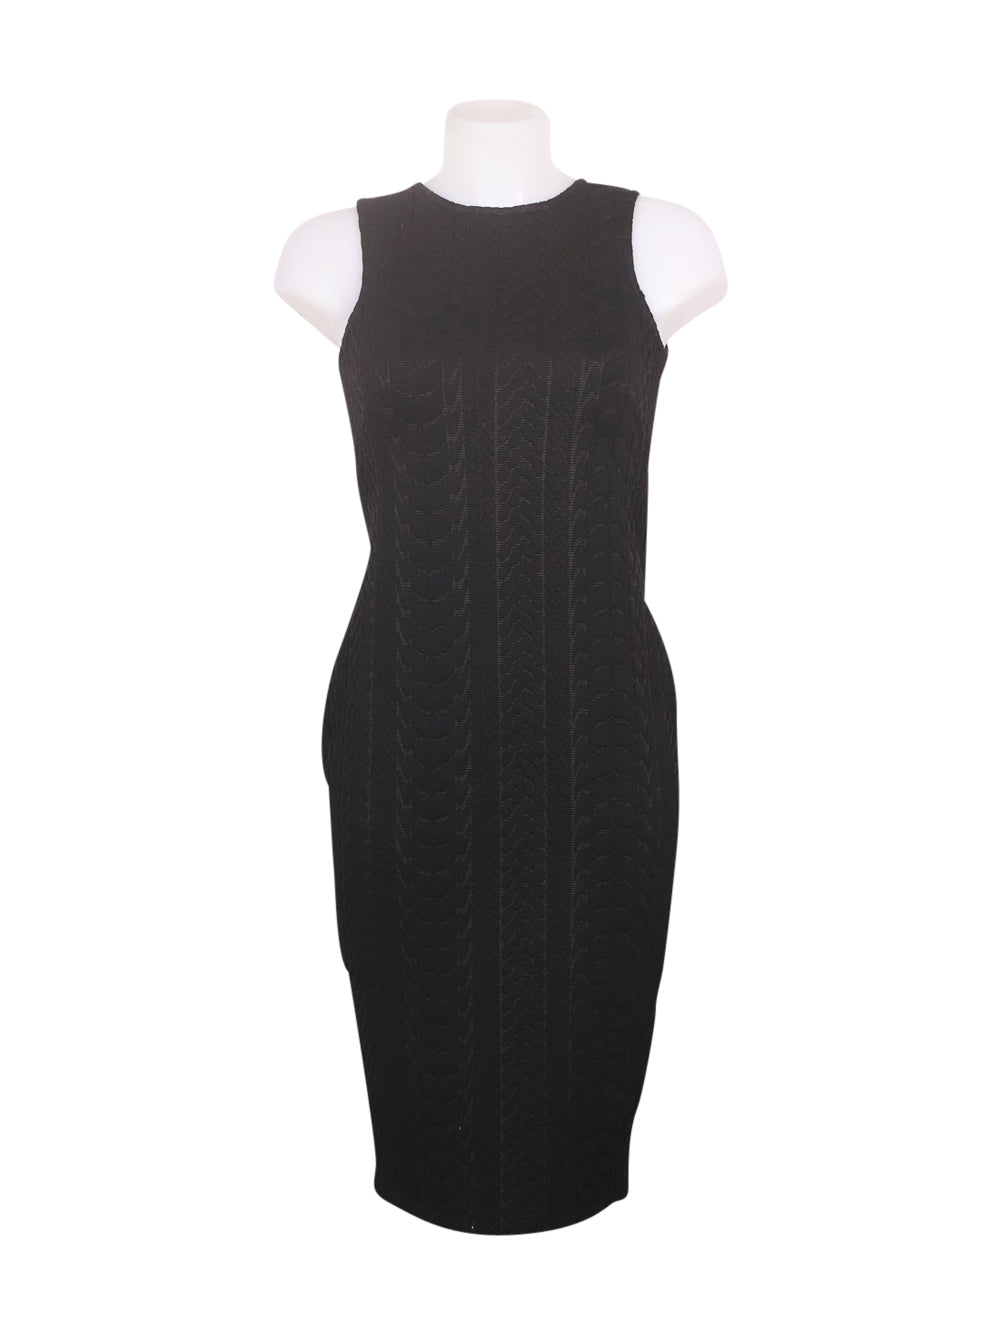 Front photo of Preloved Asos Black Woman's dress - size 6/XS